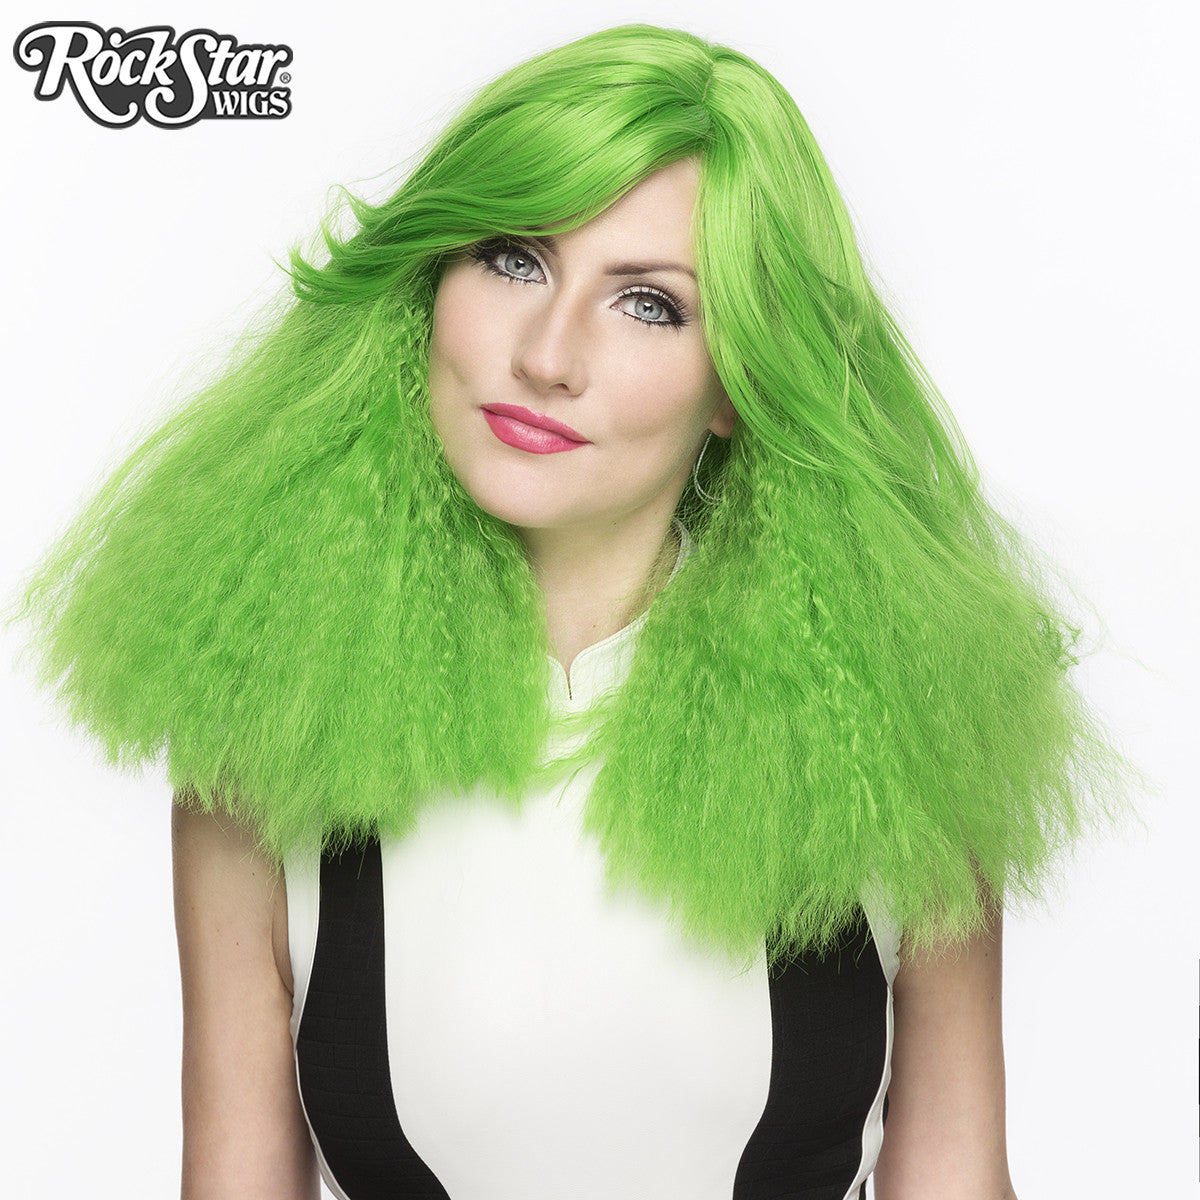 RockStar Wigs® <br> Dynamite™ Collection - Lime Green-ade -00163